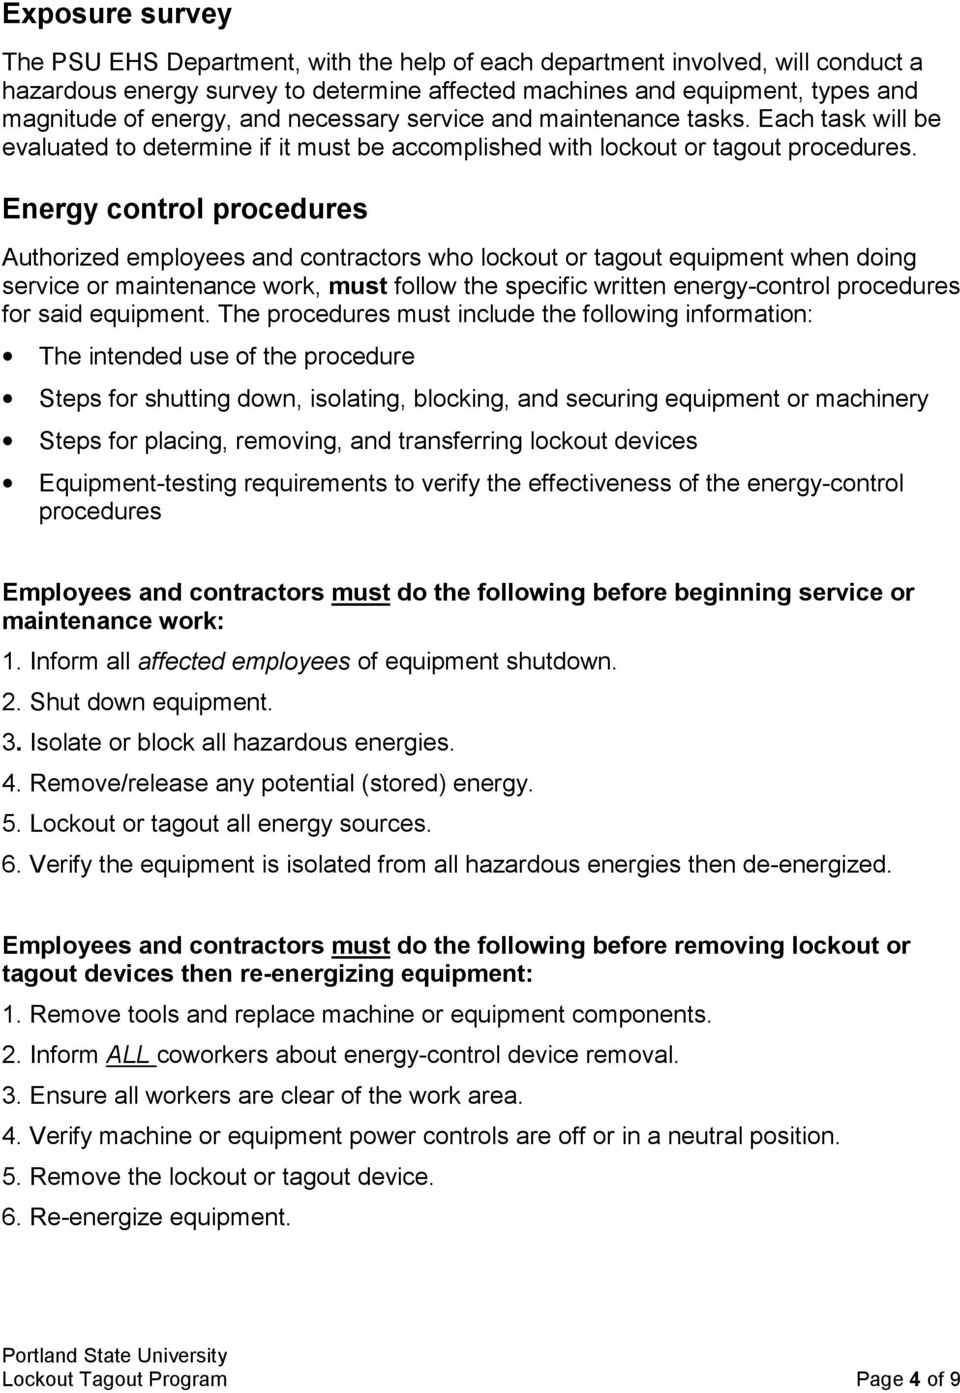 Energy control procedures Authorized employees and contractors who lockout or tagout equipment when doing service or maintenance work, must follow the specific written energy-control procedures for